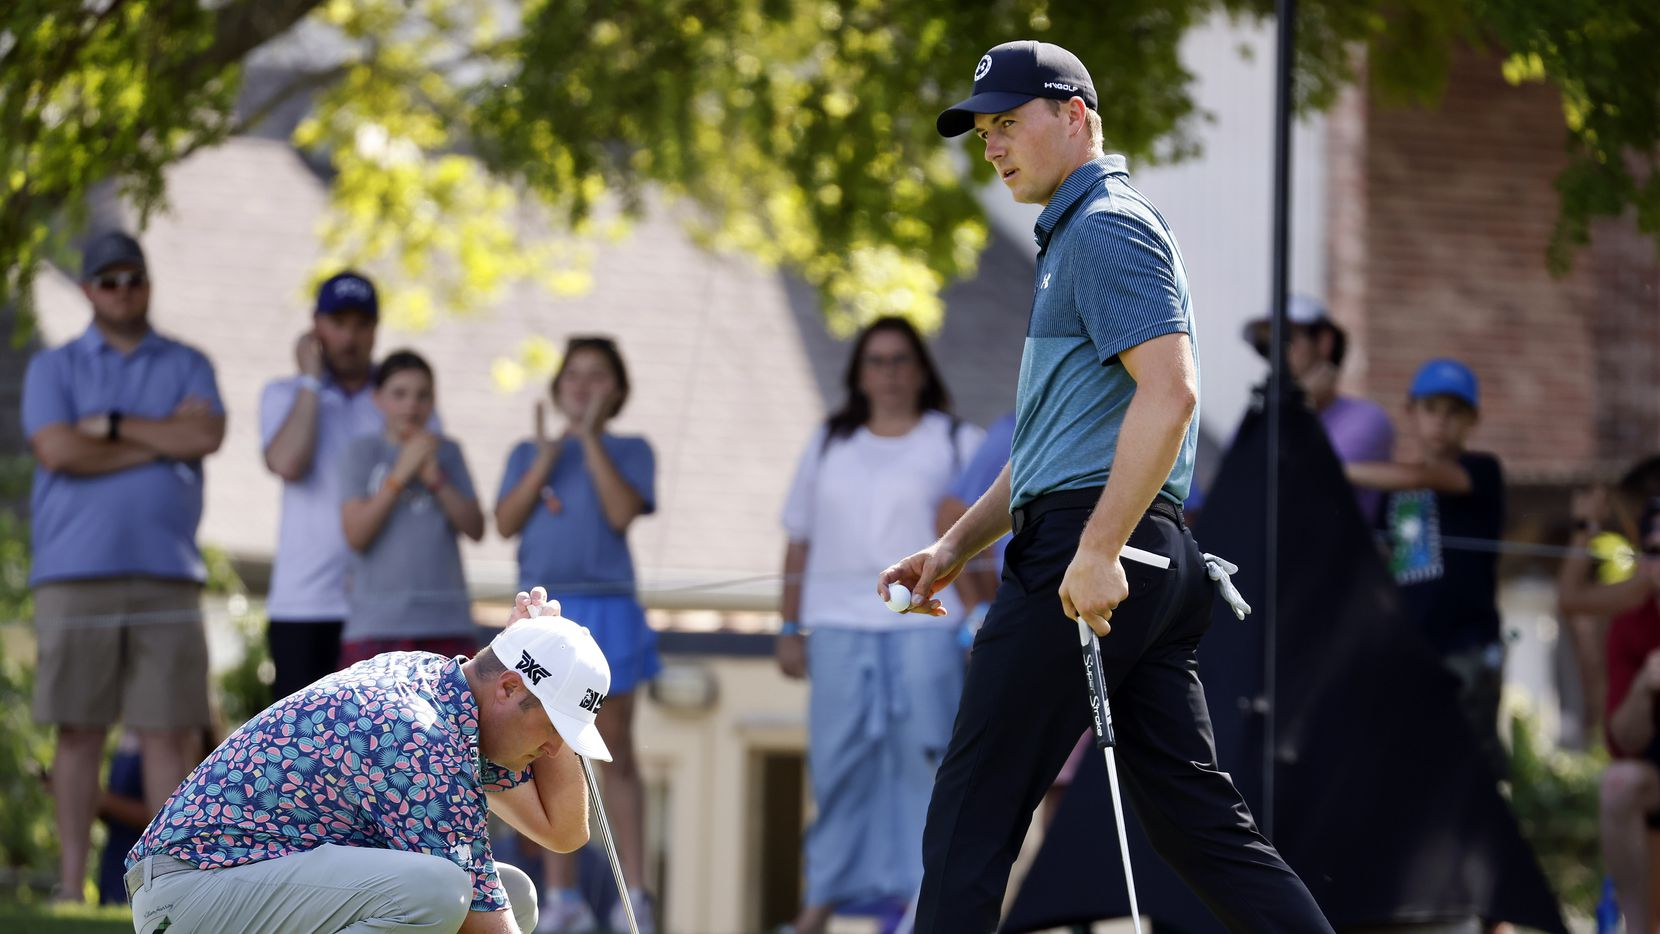 Professional golfer Jordan Spieth (right) walks off the 14th green as Jason Kokrak places his ball during round three of the Charles Schwab Challenge at the Colonial Country Club in Fort Worth, Saturday, May 29, 2021. Spieth held a one shot lead over Kokrak at 15-under.